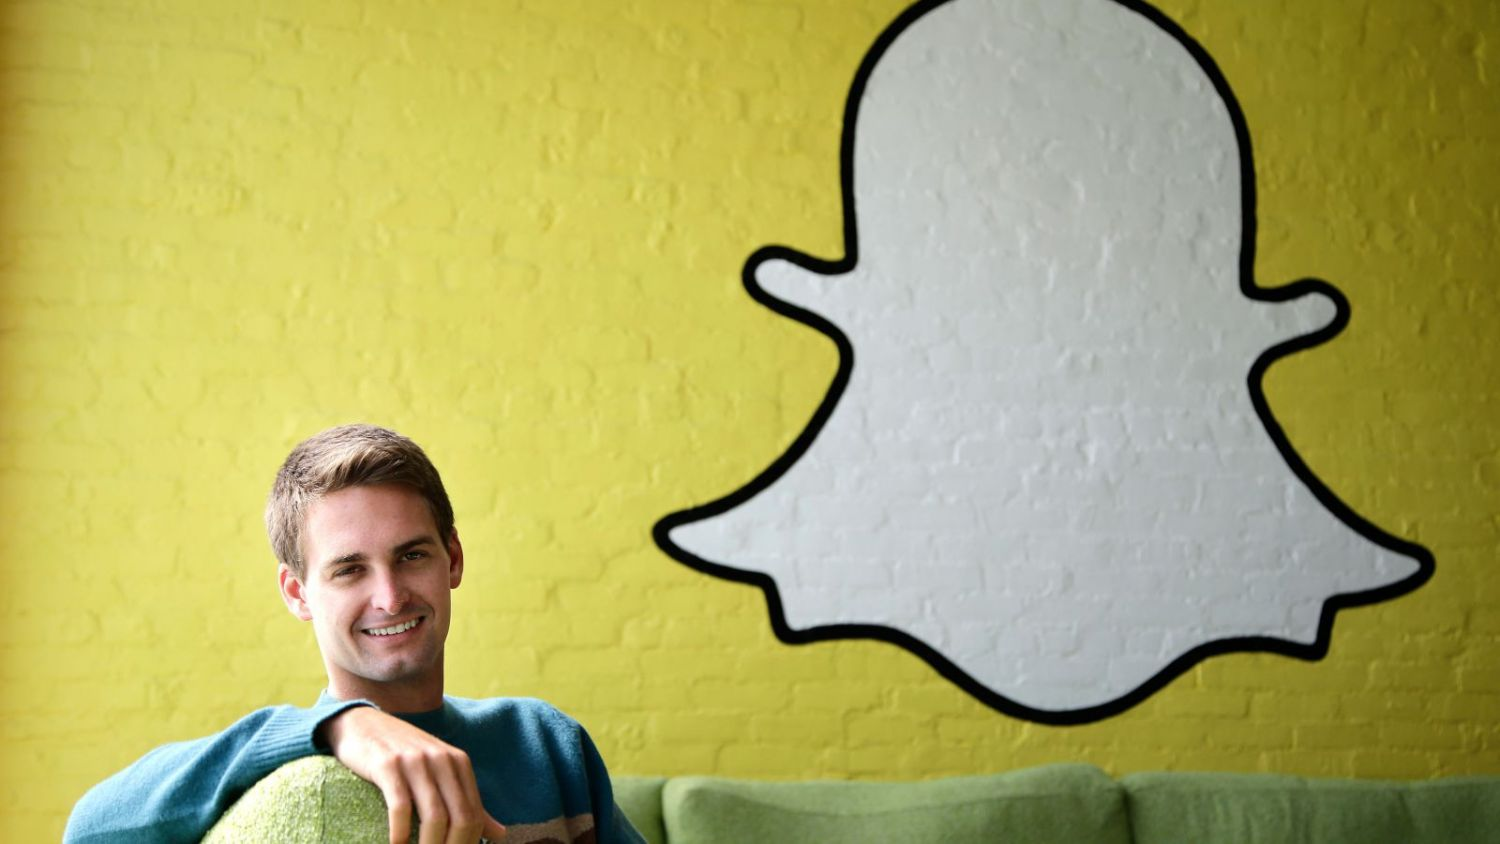 snapchat-terms-privacy-policy